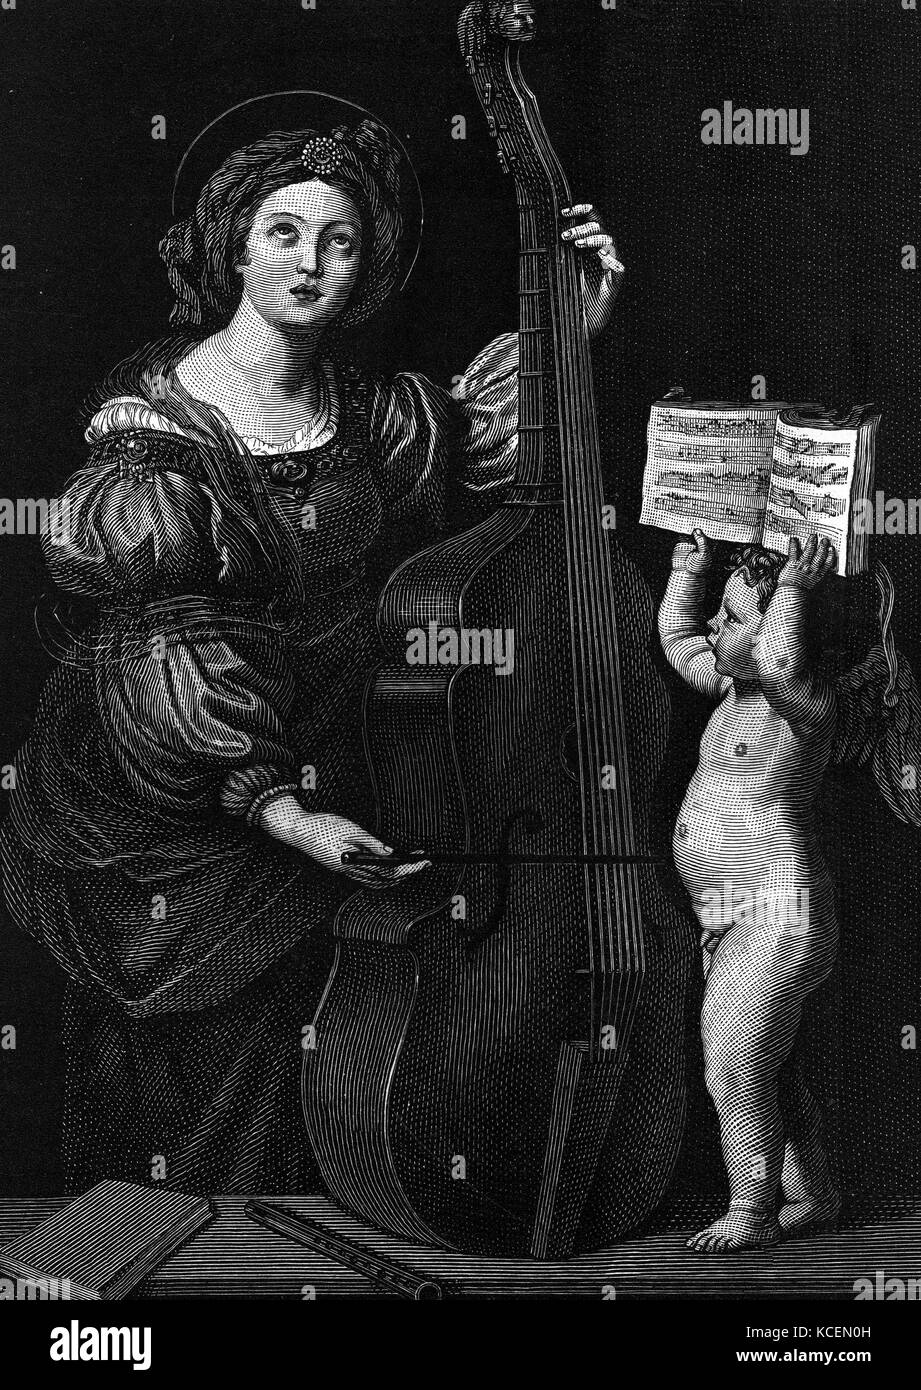 Saint Cecilia, the patroness of musicians. - Stock Image